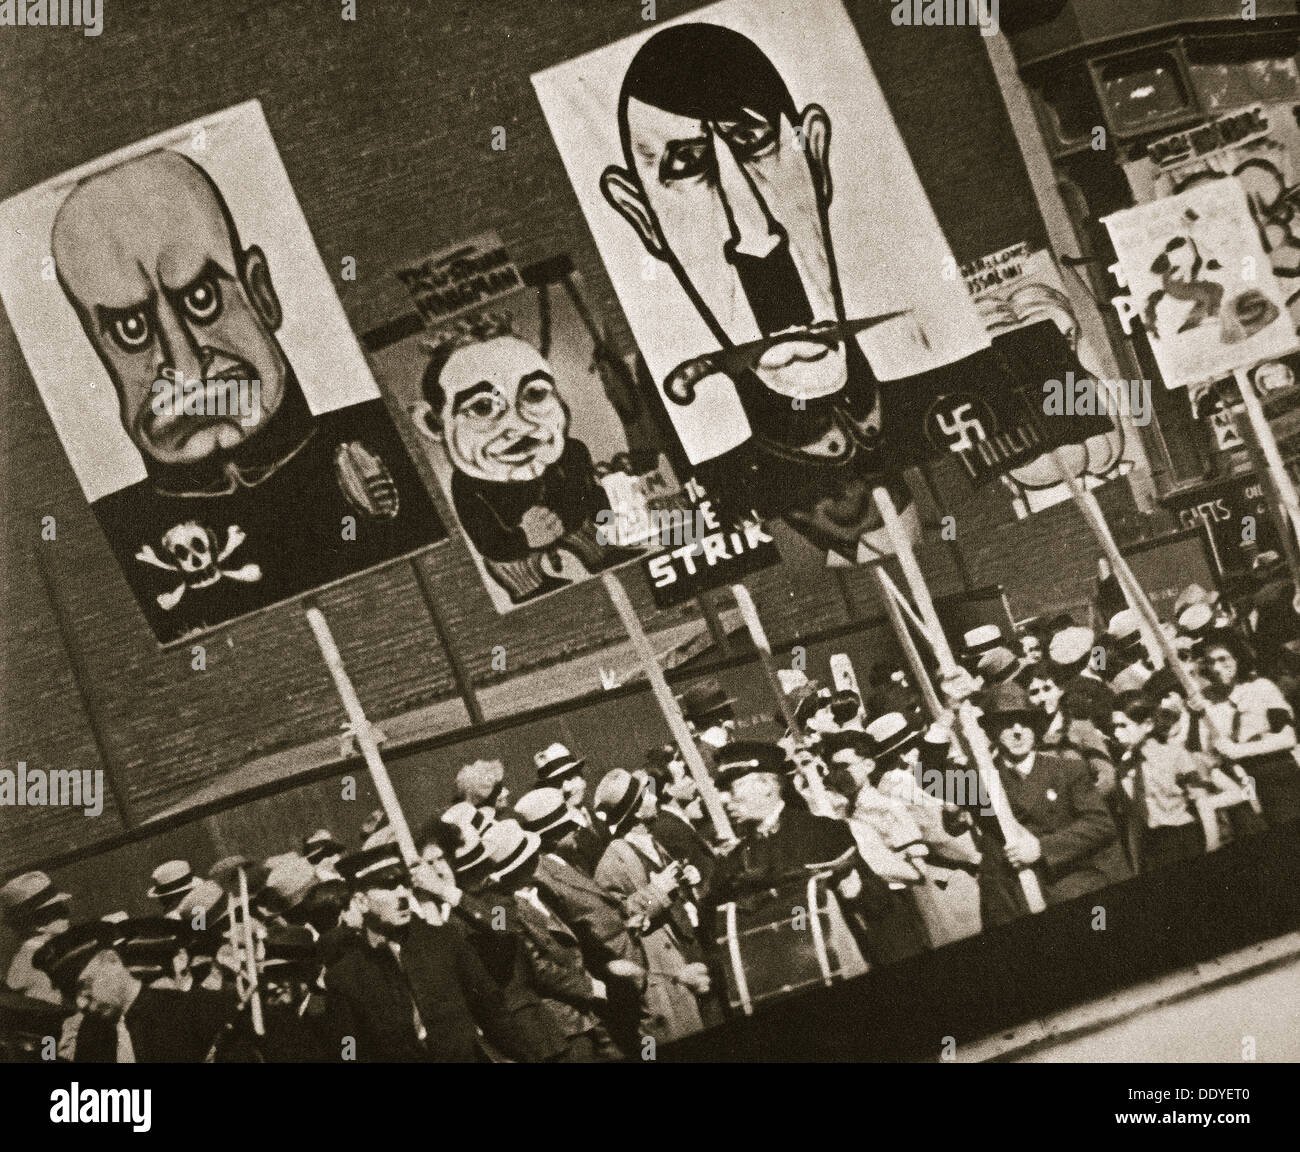 May Day parade, East Fourteenth Street, near Union Square, New York, USA, early 1930s. Artist: Unknown - Stock Image